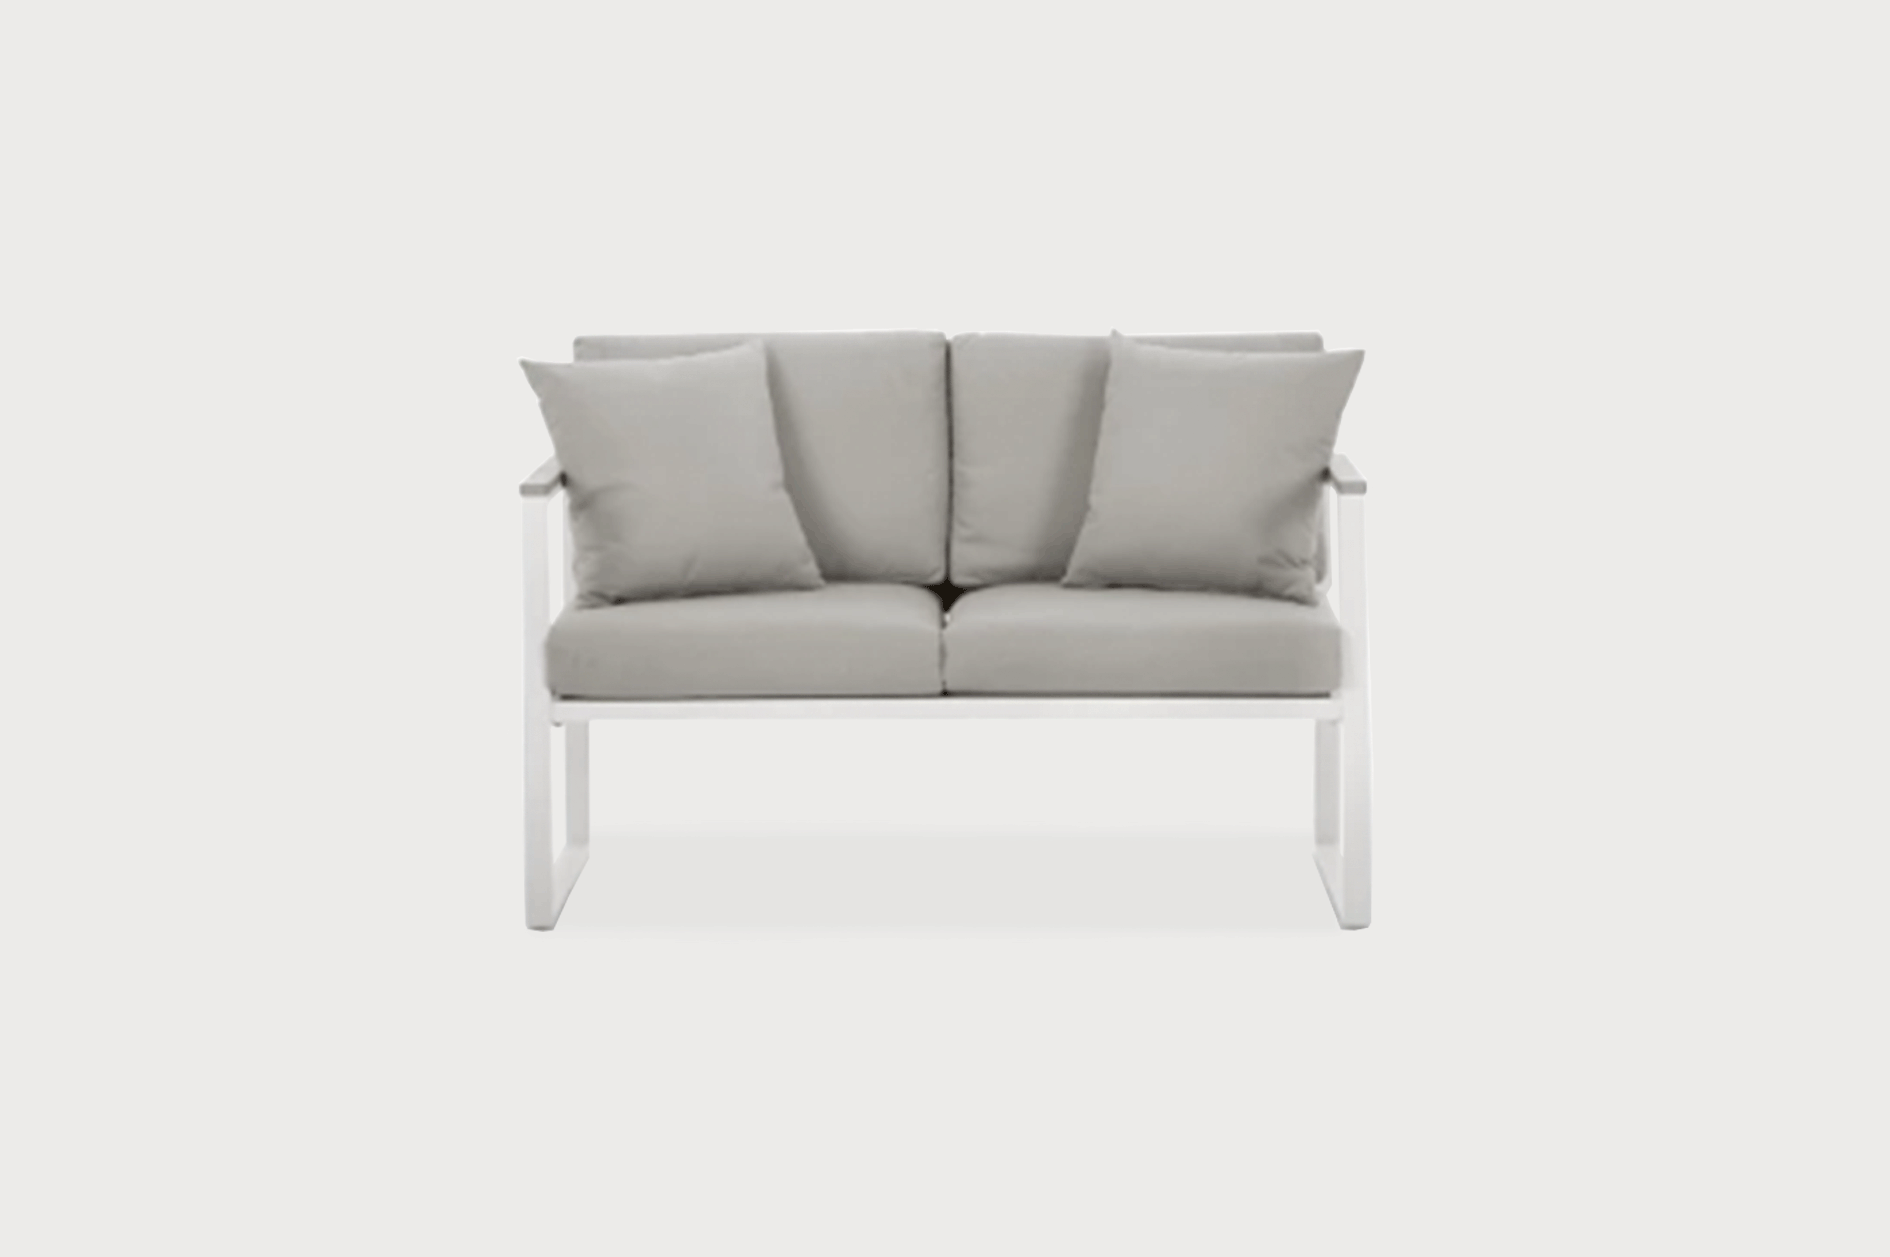 Alfresco sofa